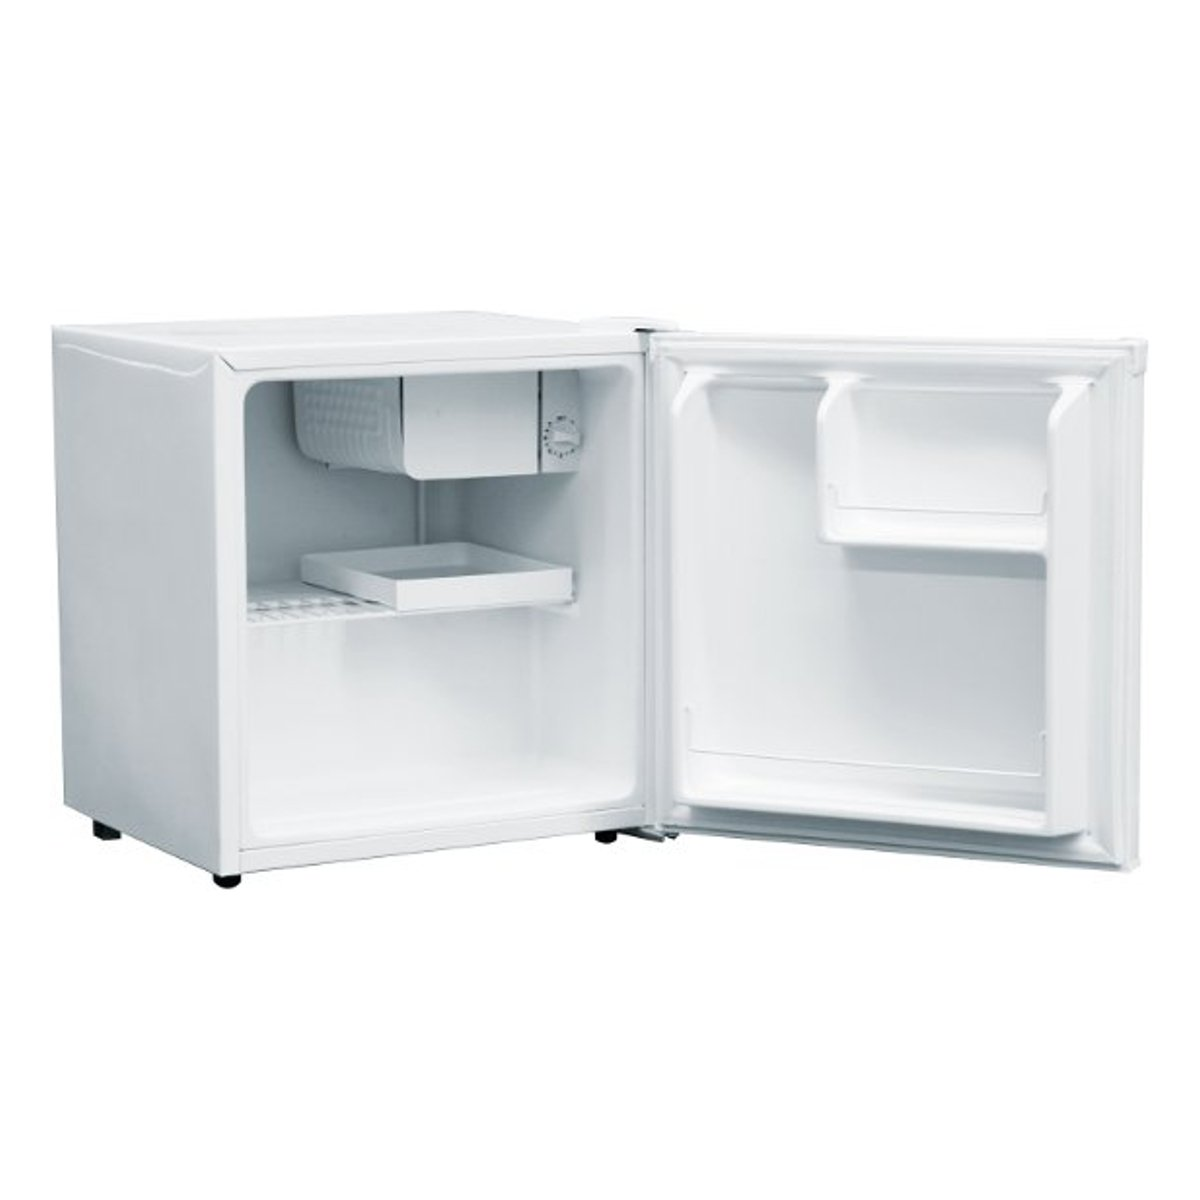 Amica Table Top Compact Fridge, White [Energy Class A+] FM061